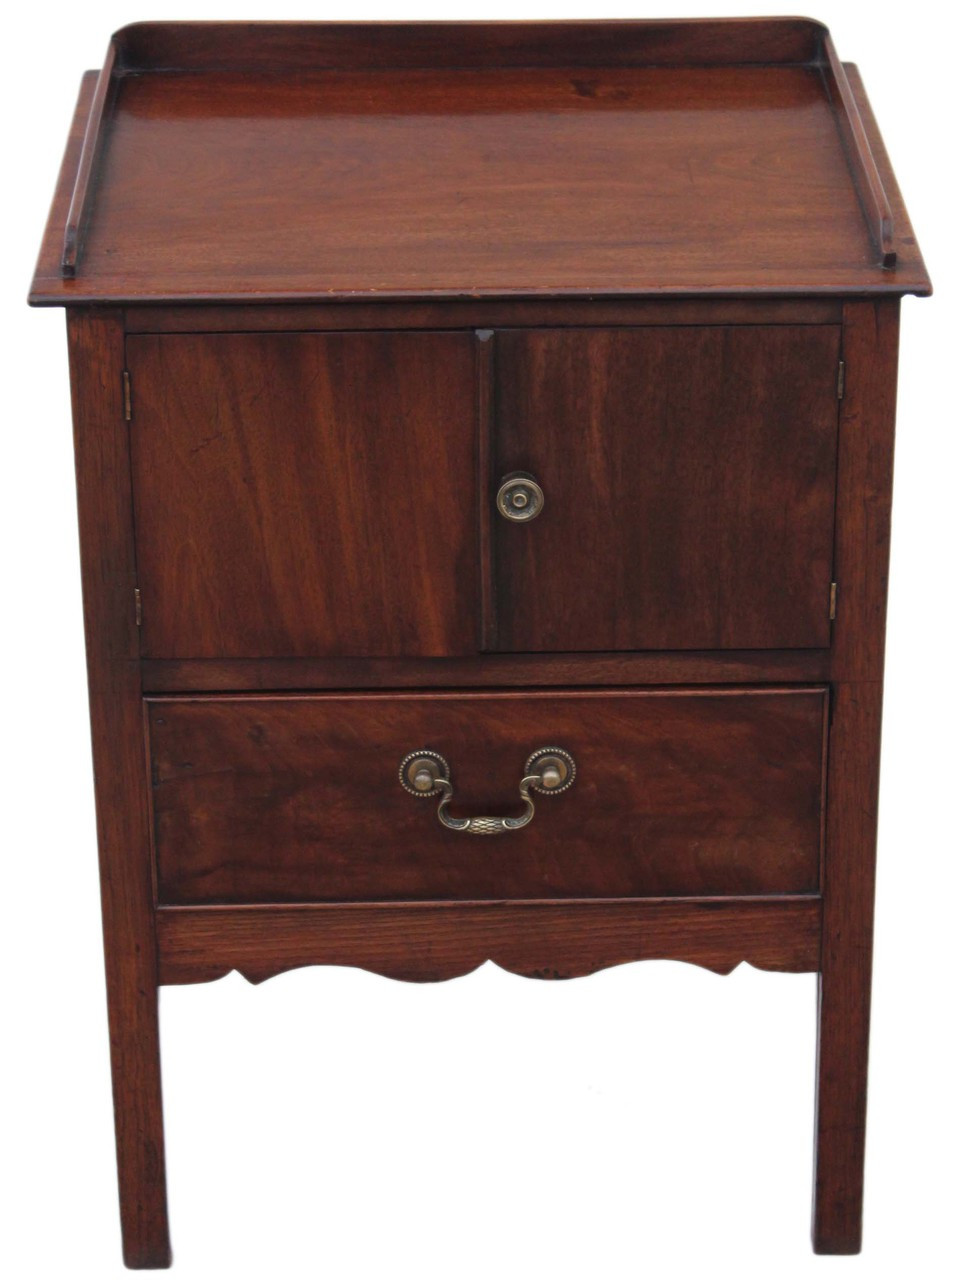 on sale 19ee9 c2f36 Georgian mahogany bedside table cabinet - West Norfolk Antiques